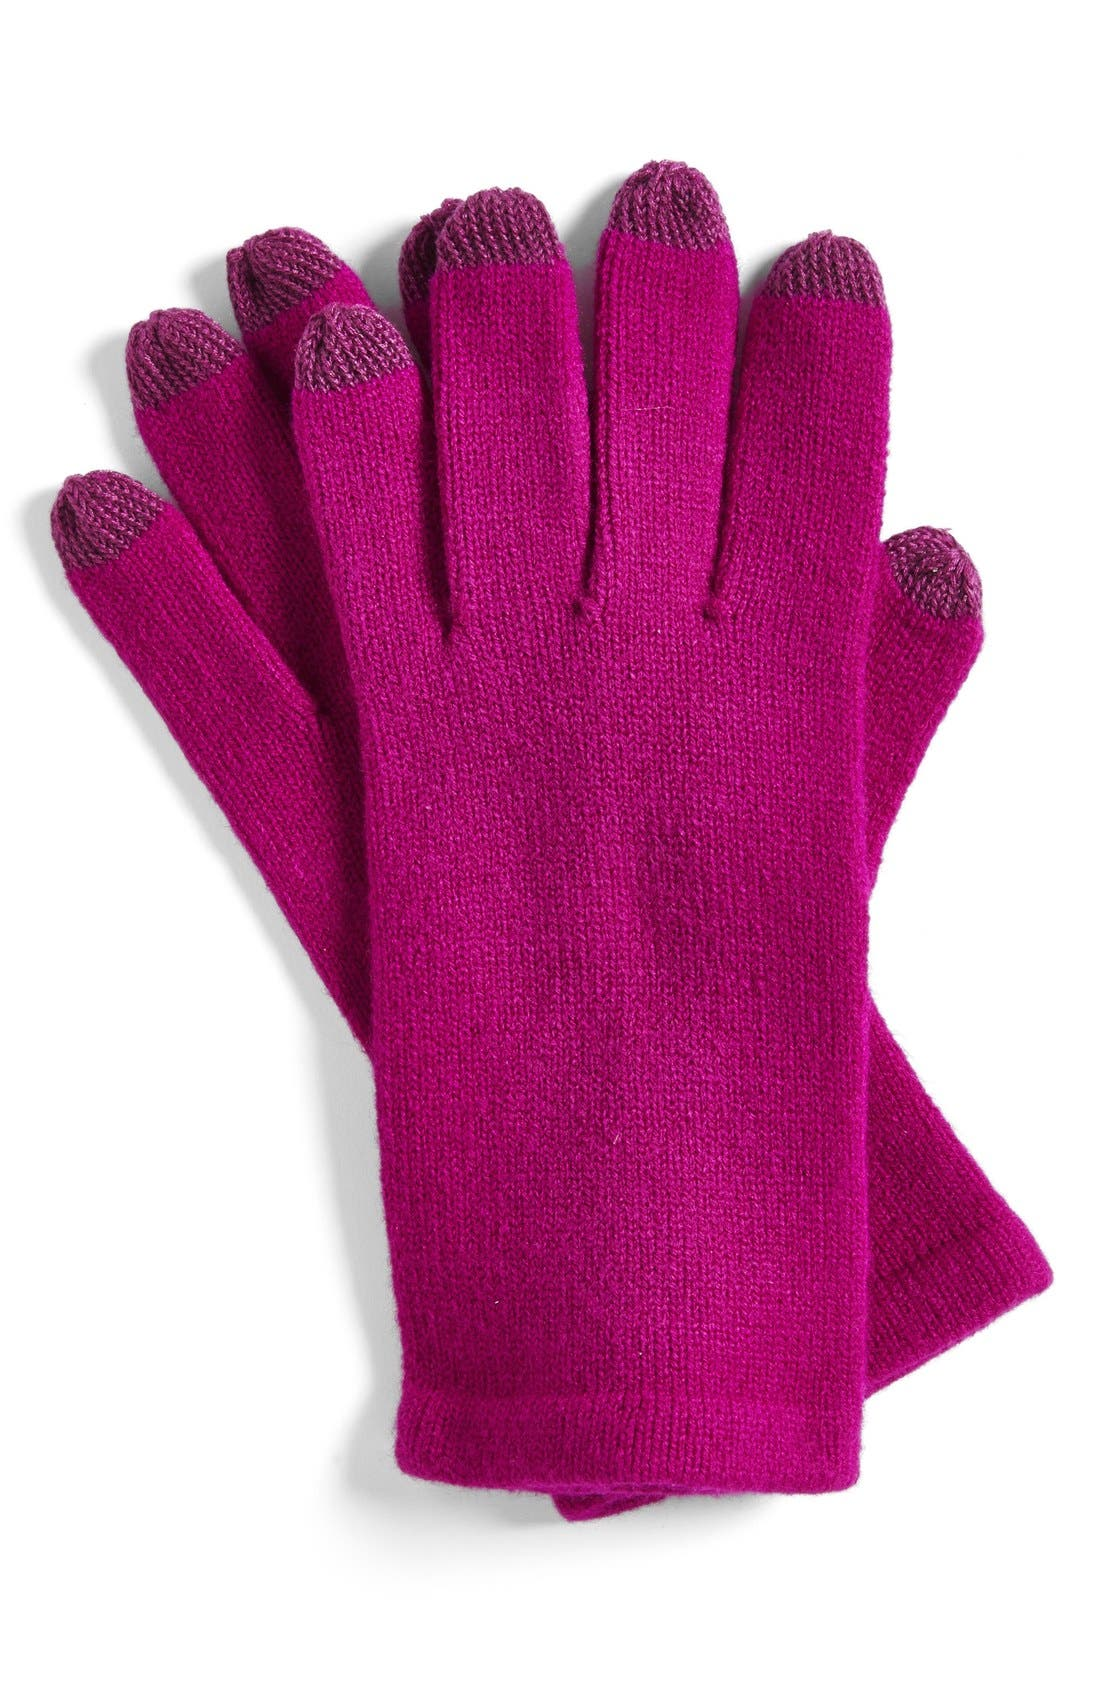 Alternate Image 1 Selected - Echo 'Allover Touch' Gloves